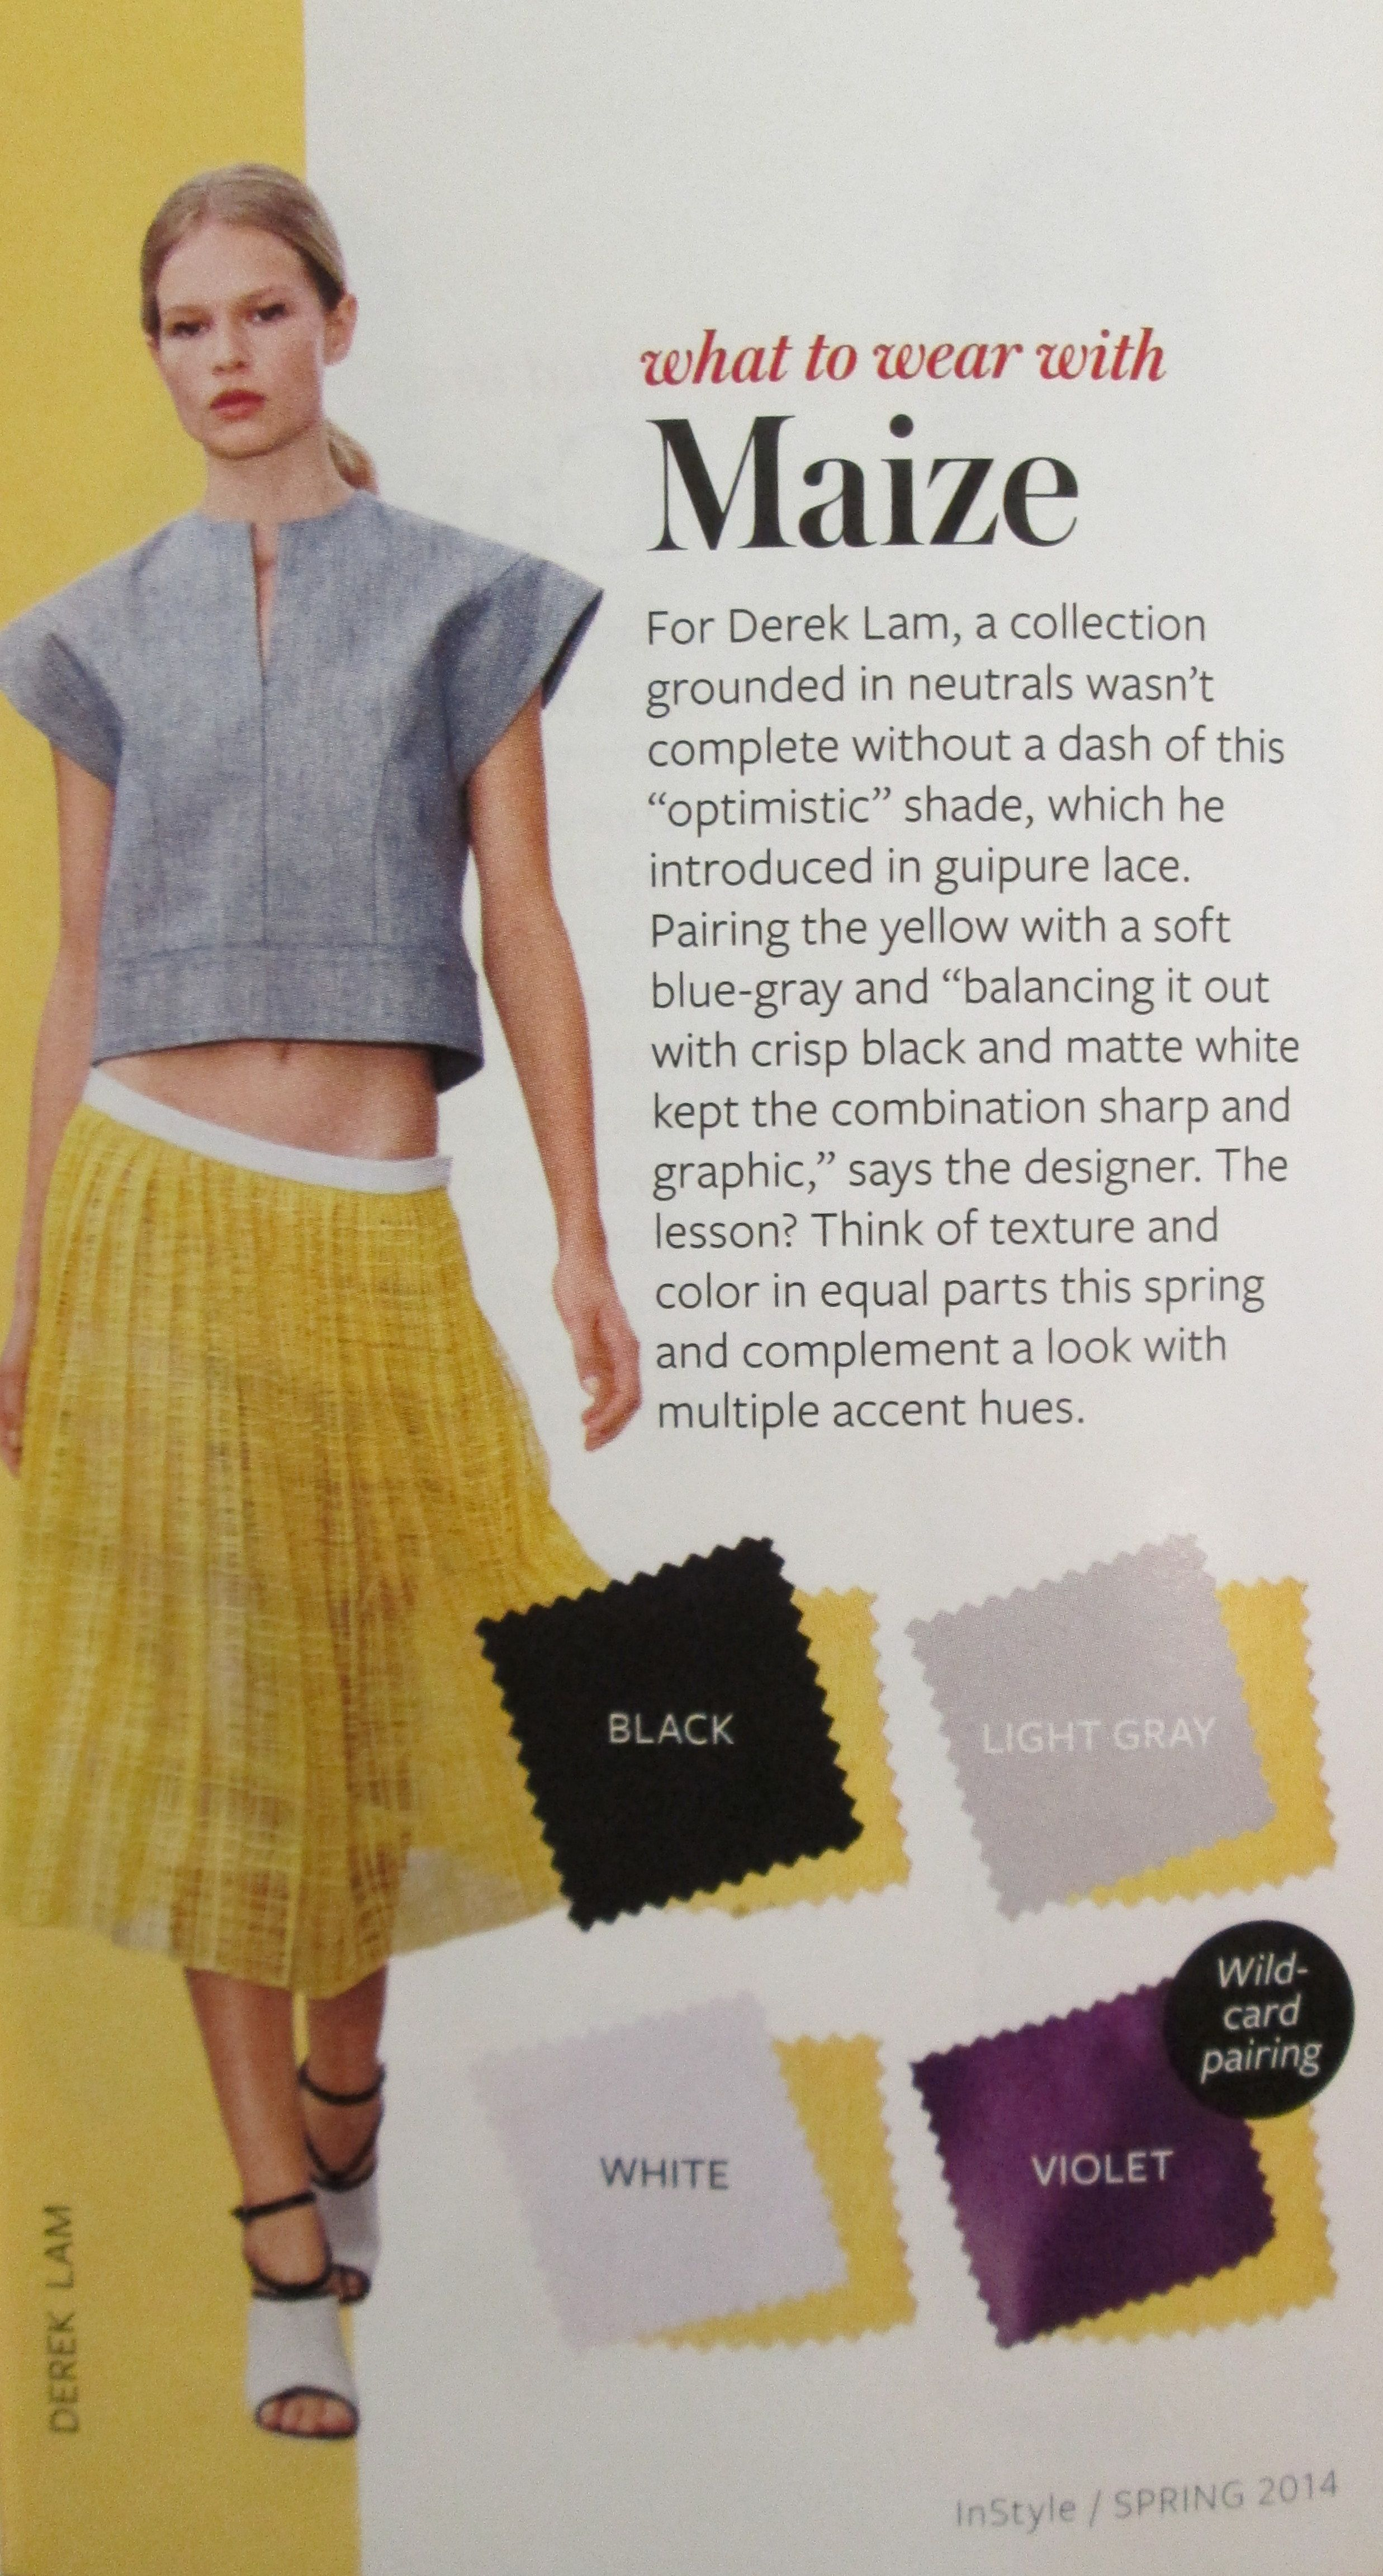 Instyle color crash course maize outfit tips pinterest instyle color crash course maize nvjuhfo Image collections